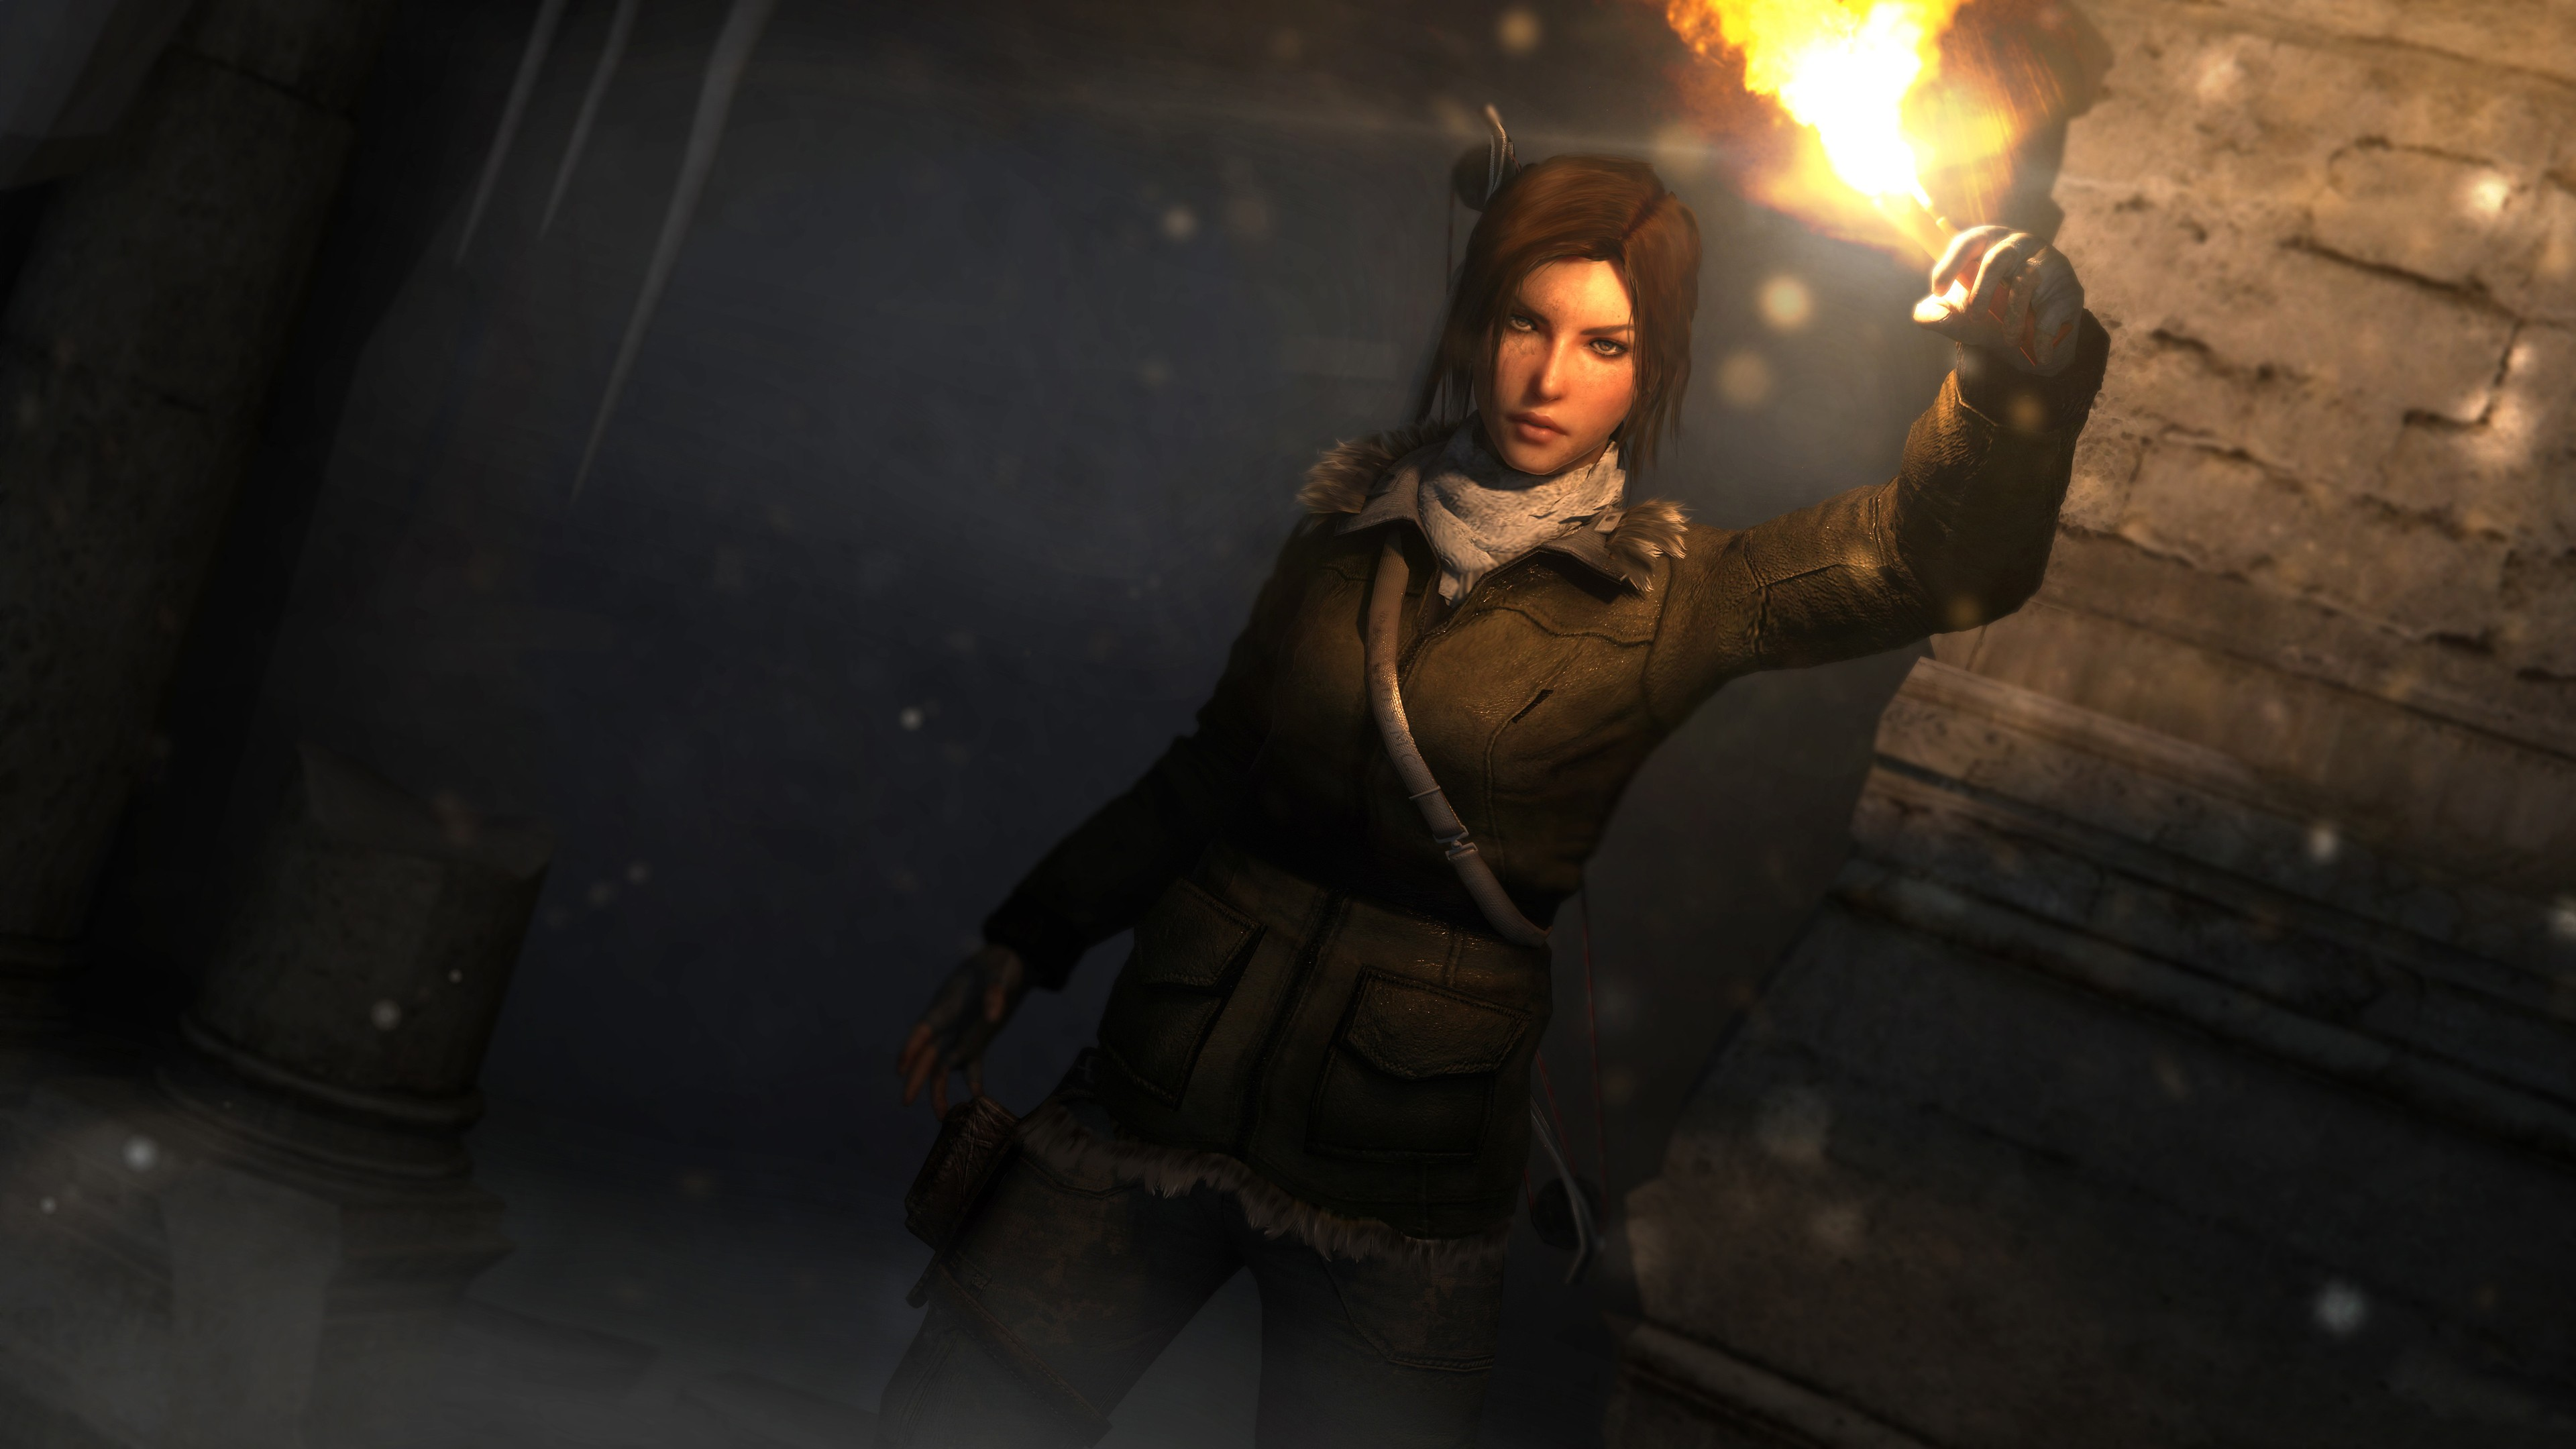 Rise of the tomb raider wallpapers pictures images - Rise of the tomb raider 4k wallpaper ...